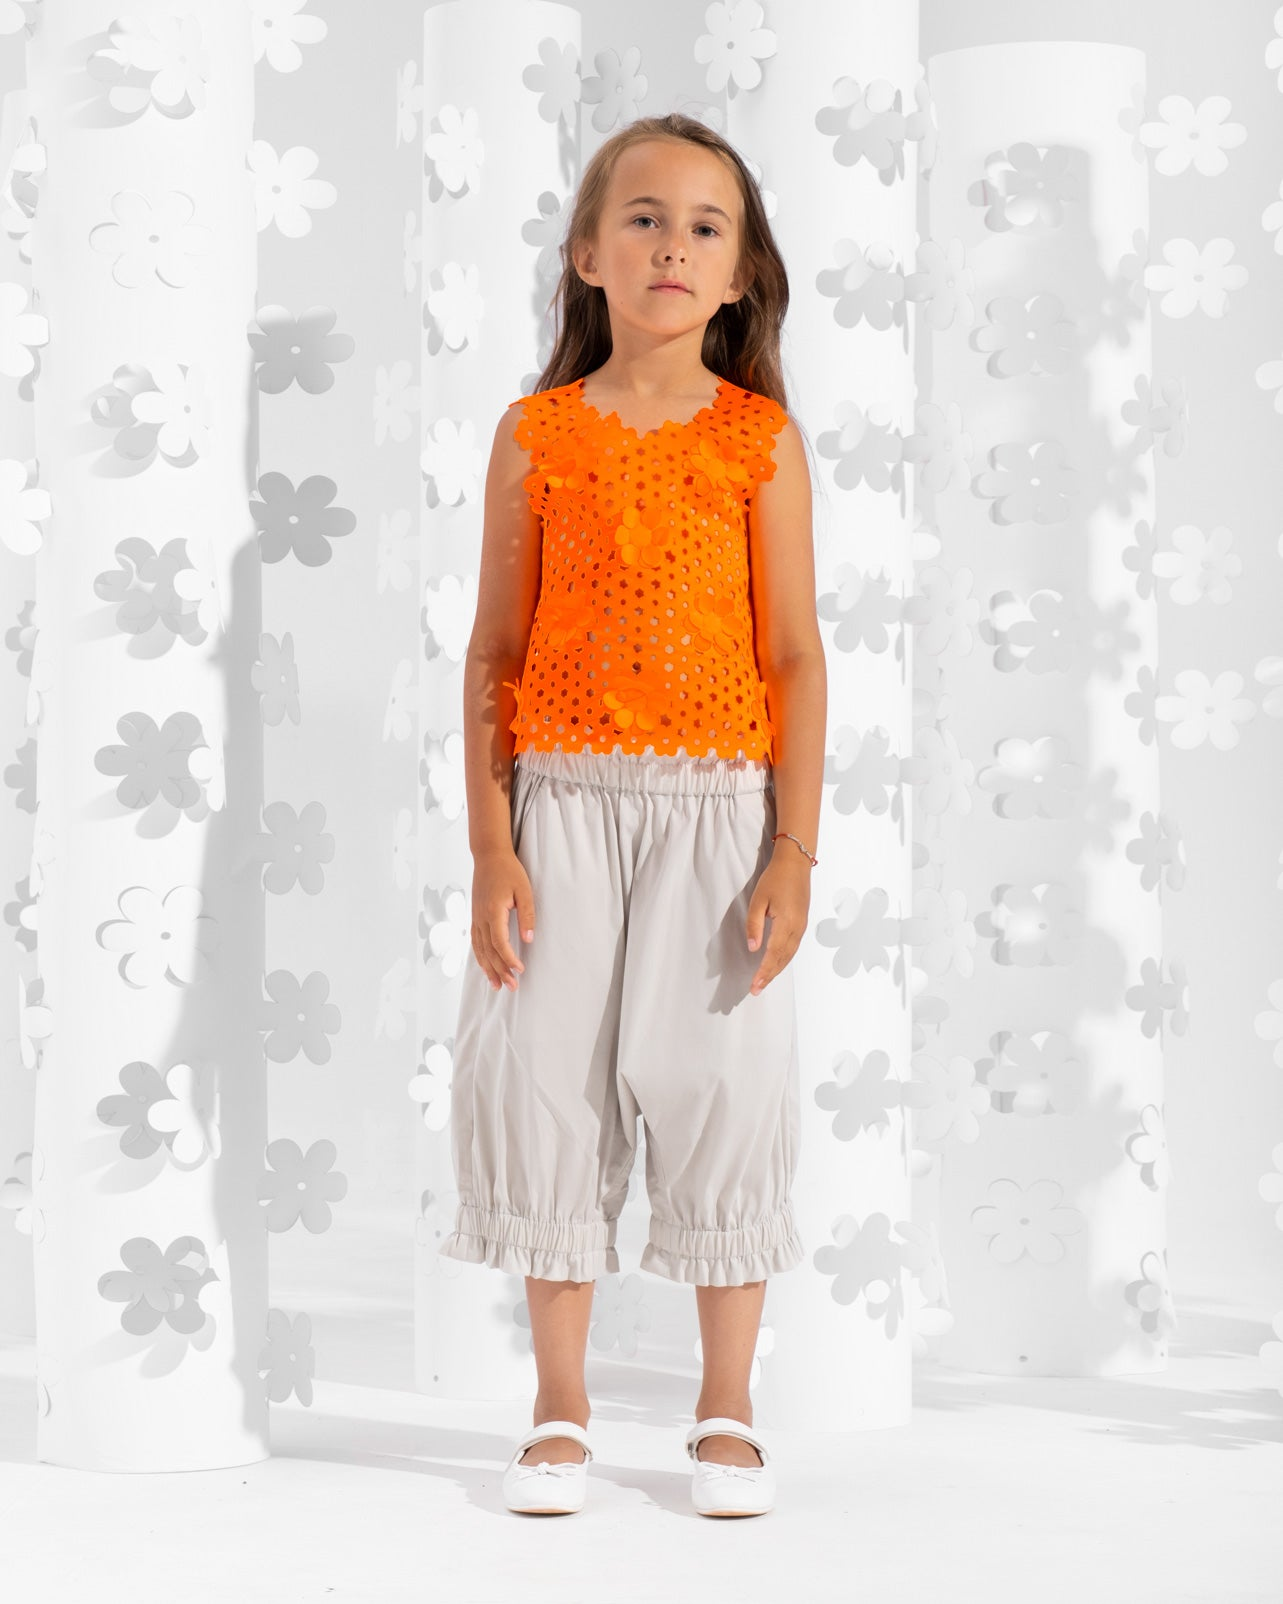 Sleeveless laser-cut top decorated with floral appliques